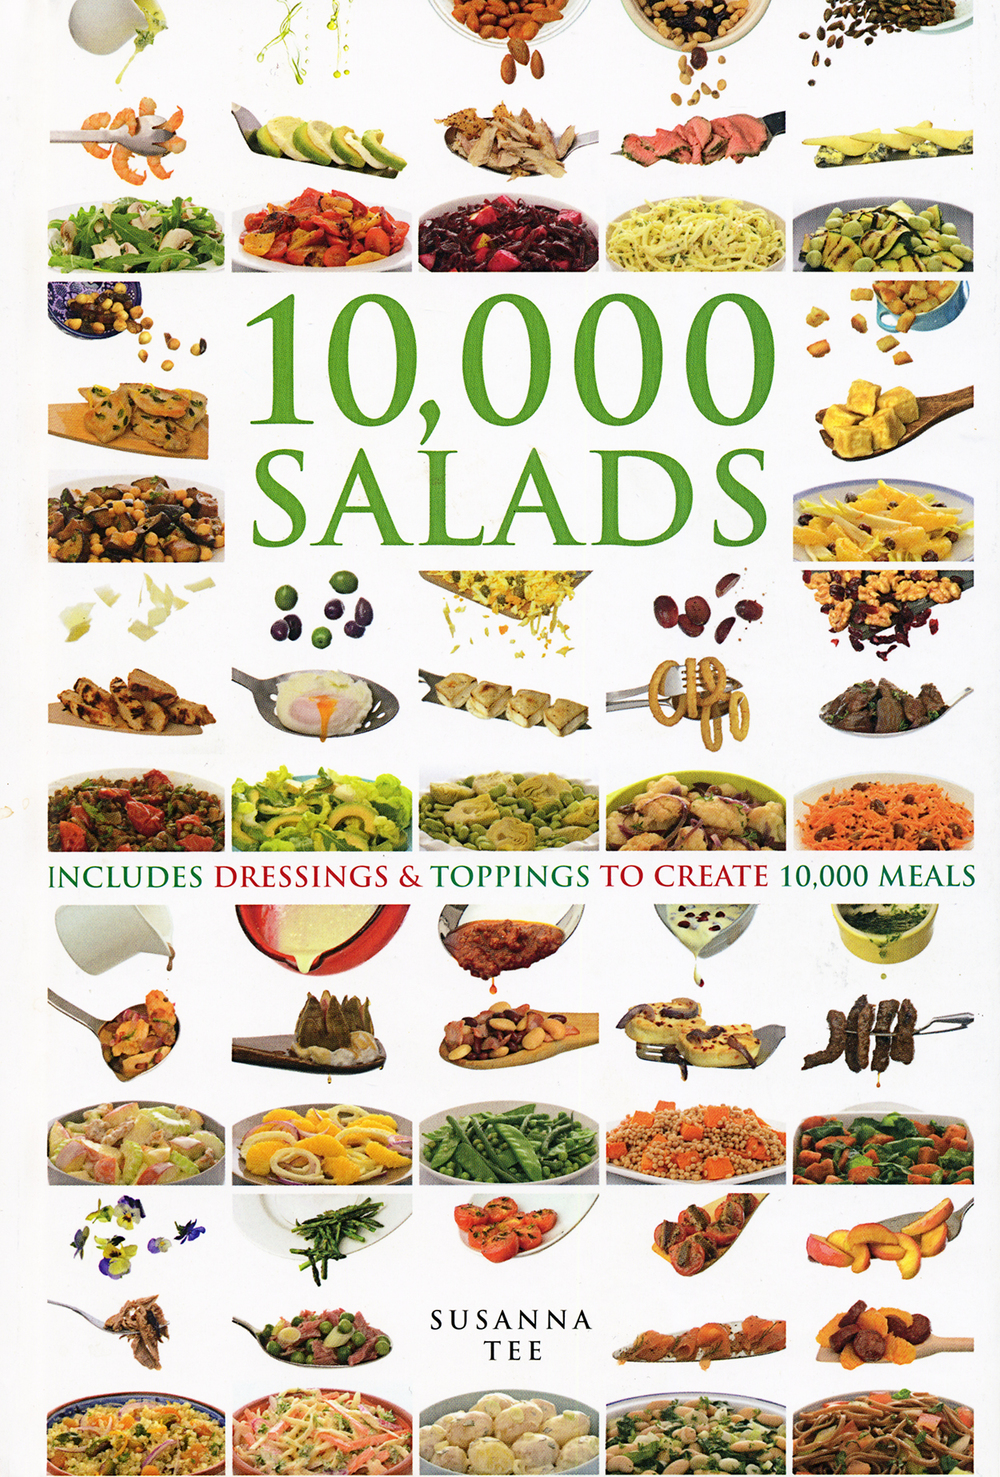 10,000 Salads. Commissioned by Ivy Press